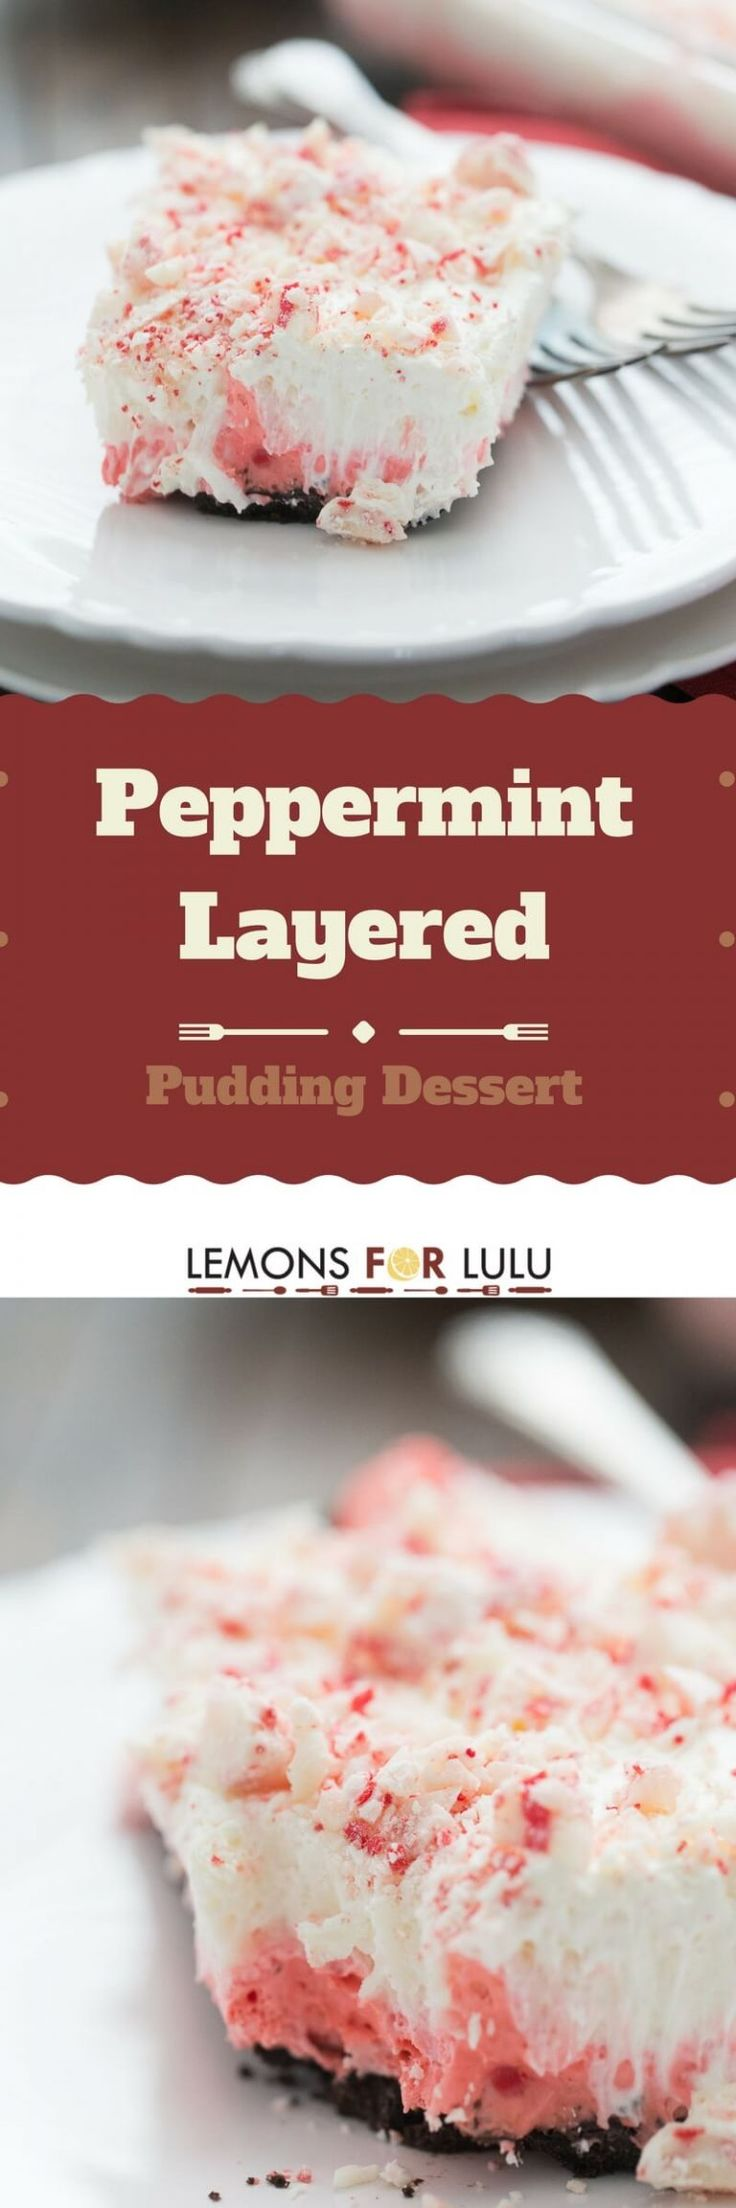 This pudding dessert recipe has four individual layers that come together to create this creamy and festive holiday dessert!  The peppermint flavor really shines; this is a must for the holidays!